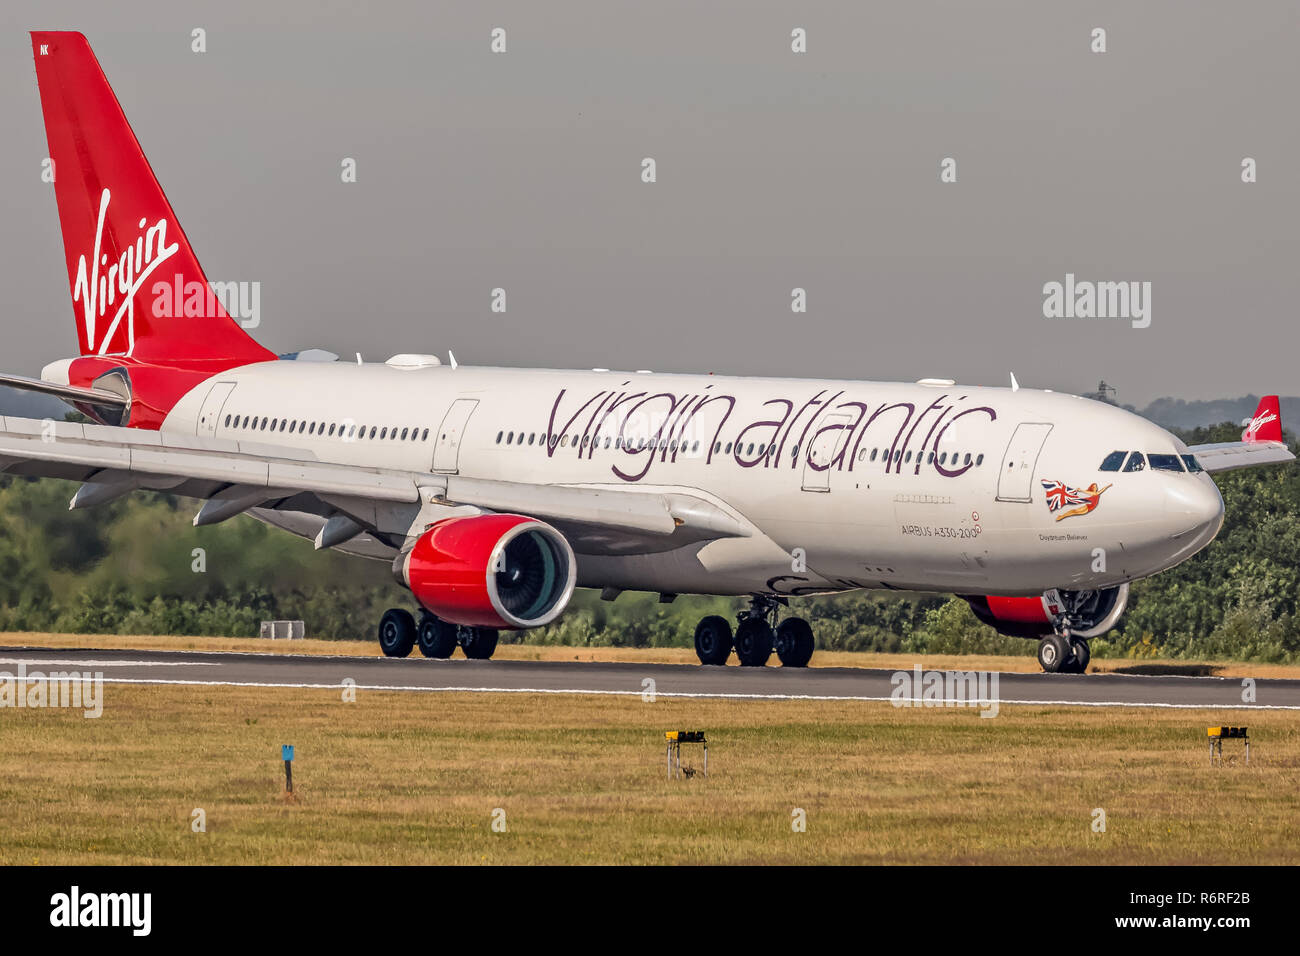 A Virgin Atlantic Airways Airbus A330, registration G-VMNK, taxying back to the terminal at Manchester Airport in England after landing. - Stock Image